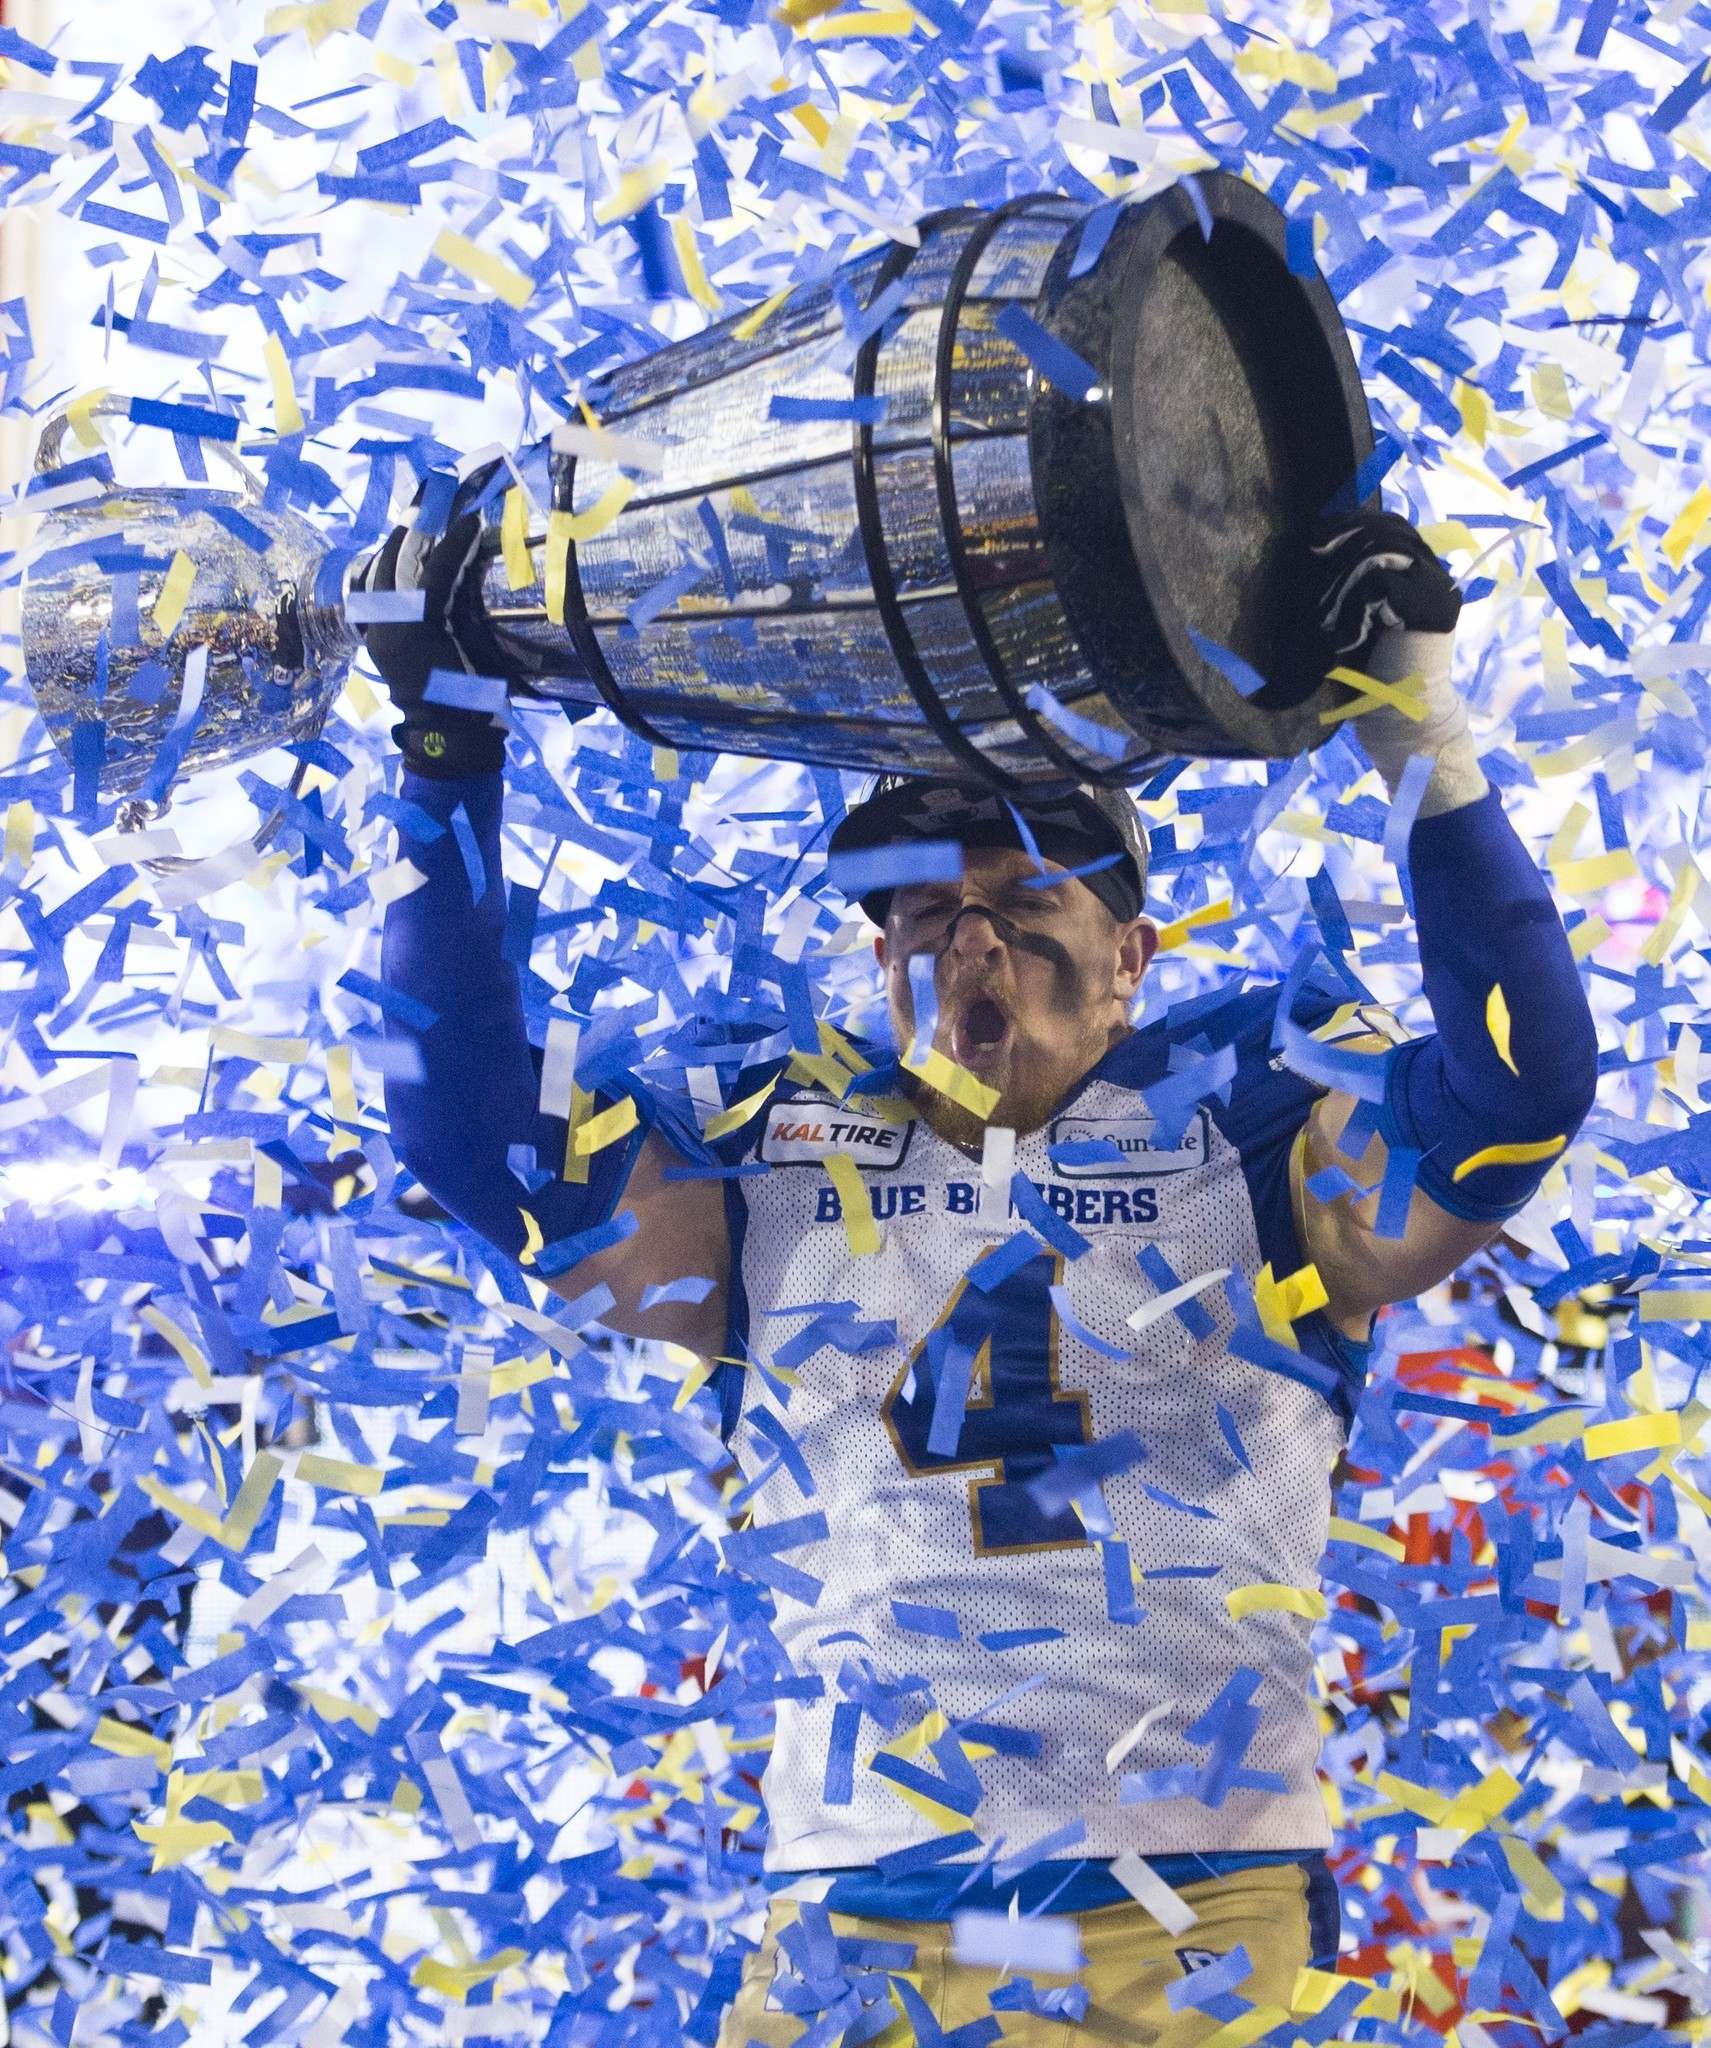 Miller said the Bombers won't be pulling out all the stops to celebrate the 2019 Grey Cup champion Bombers until a full crowd can take it in.